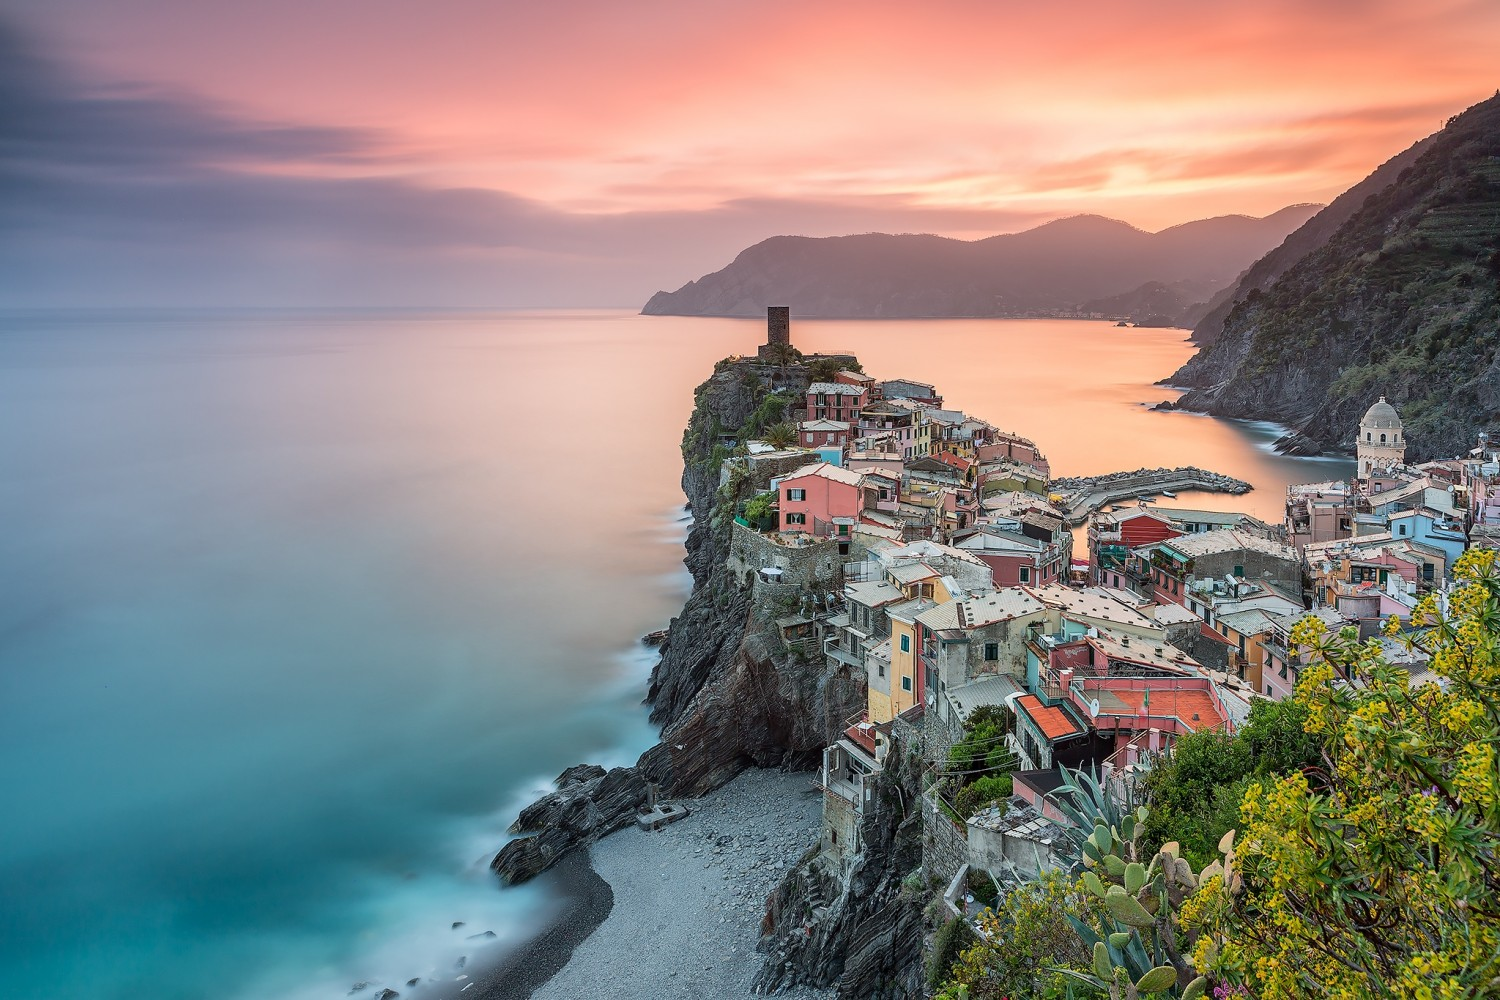 A Day In The Life Of Seascape Photographer Francesco Gola